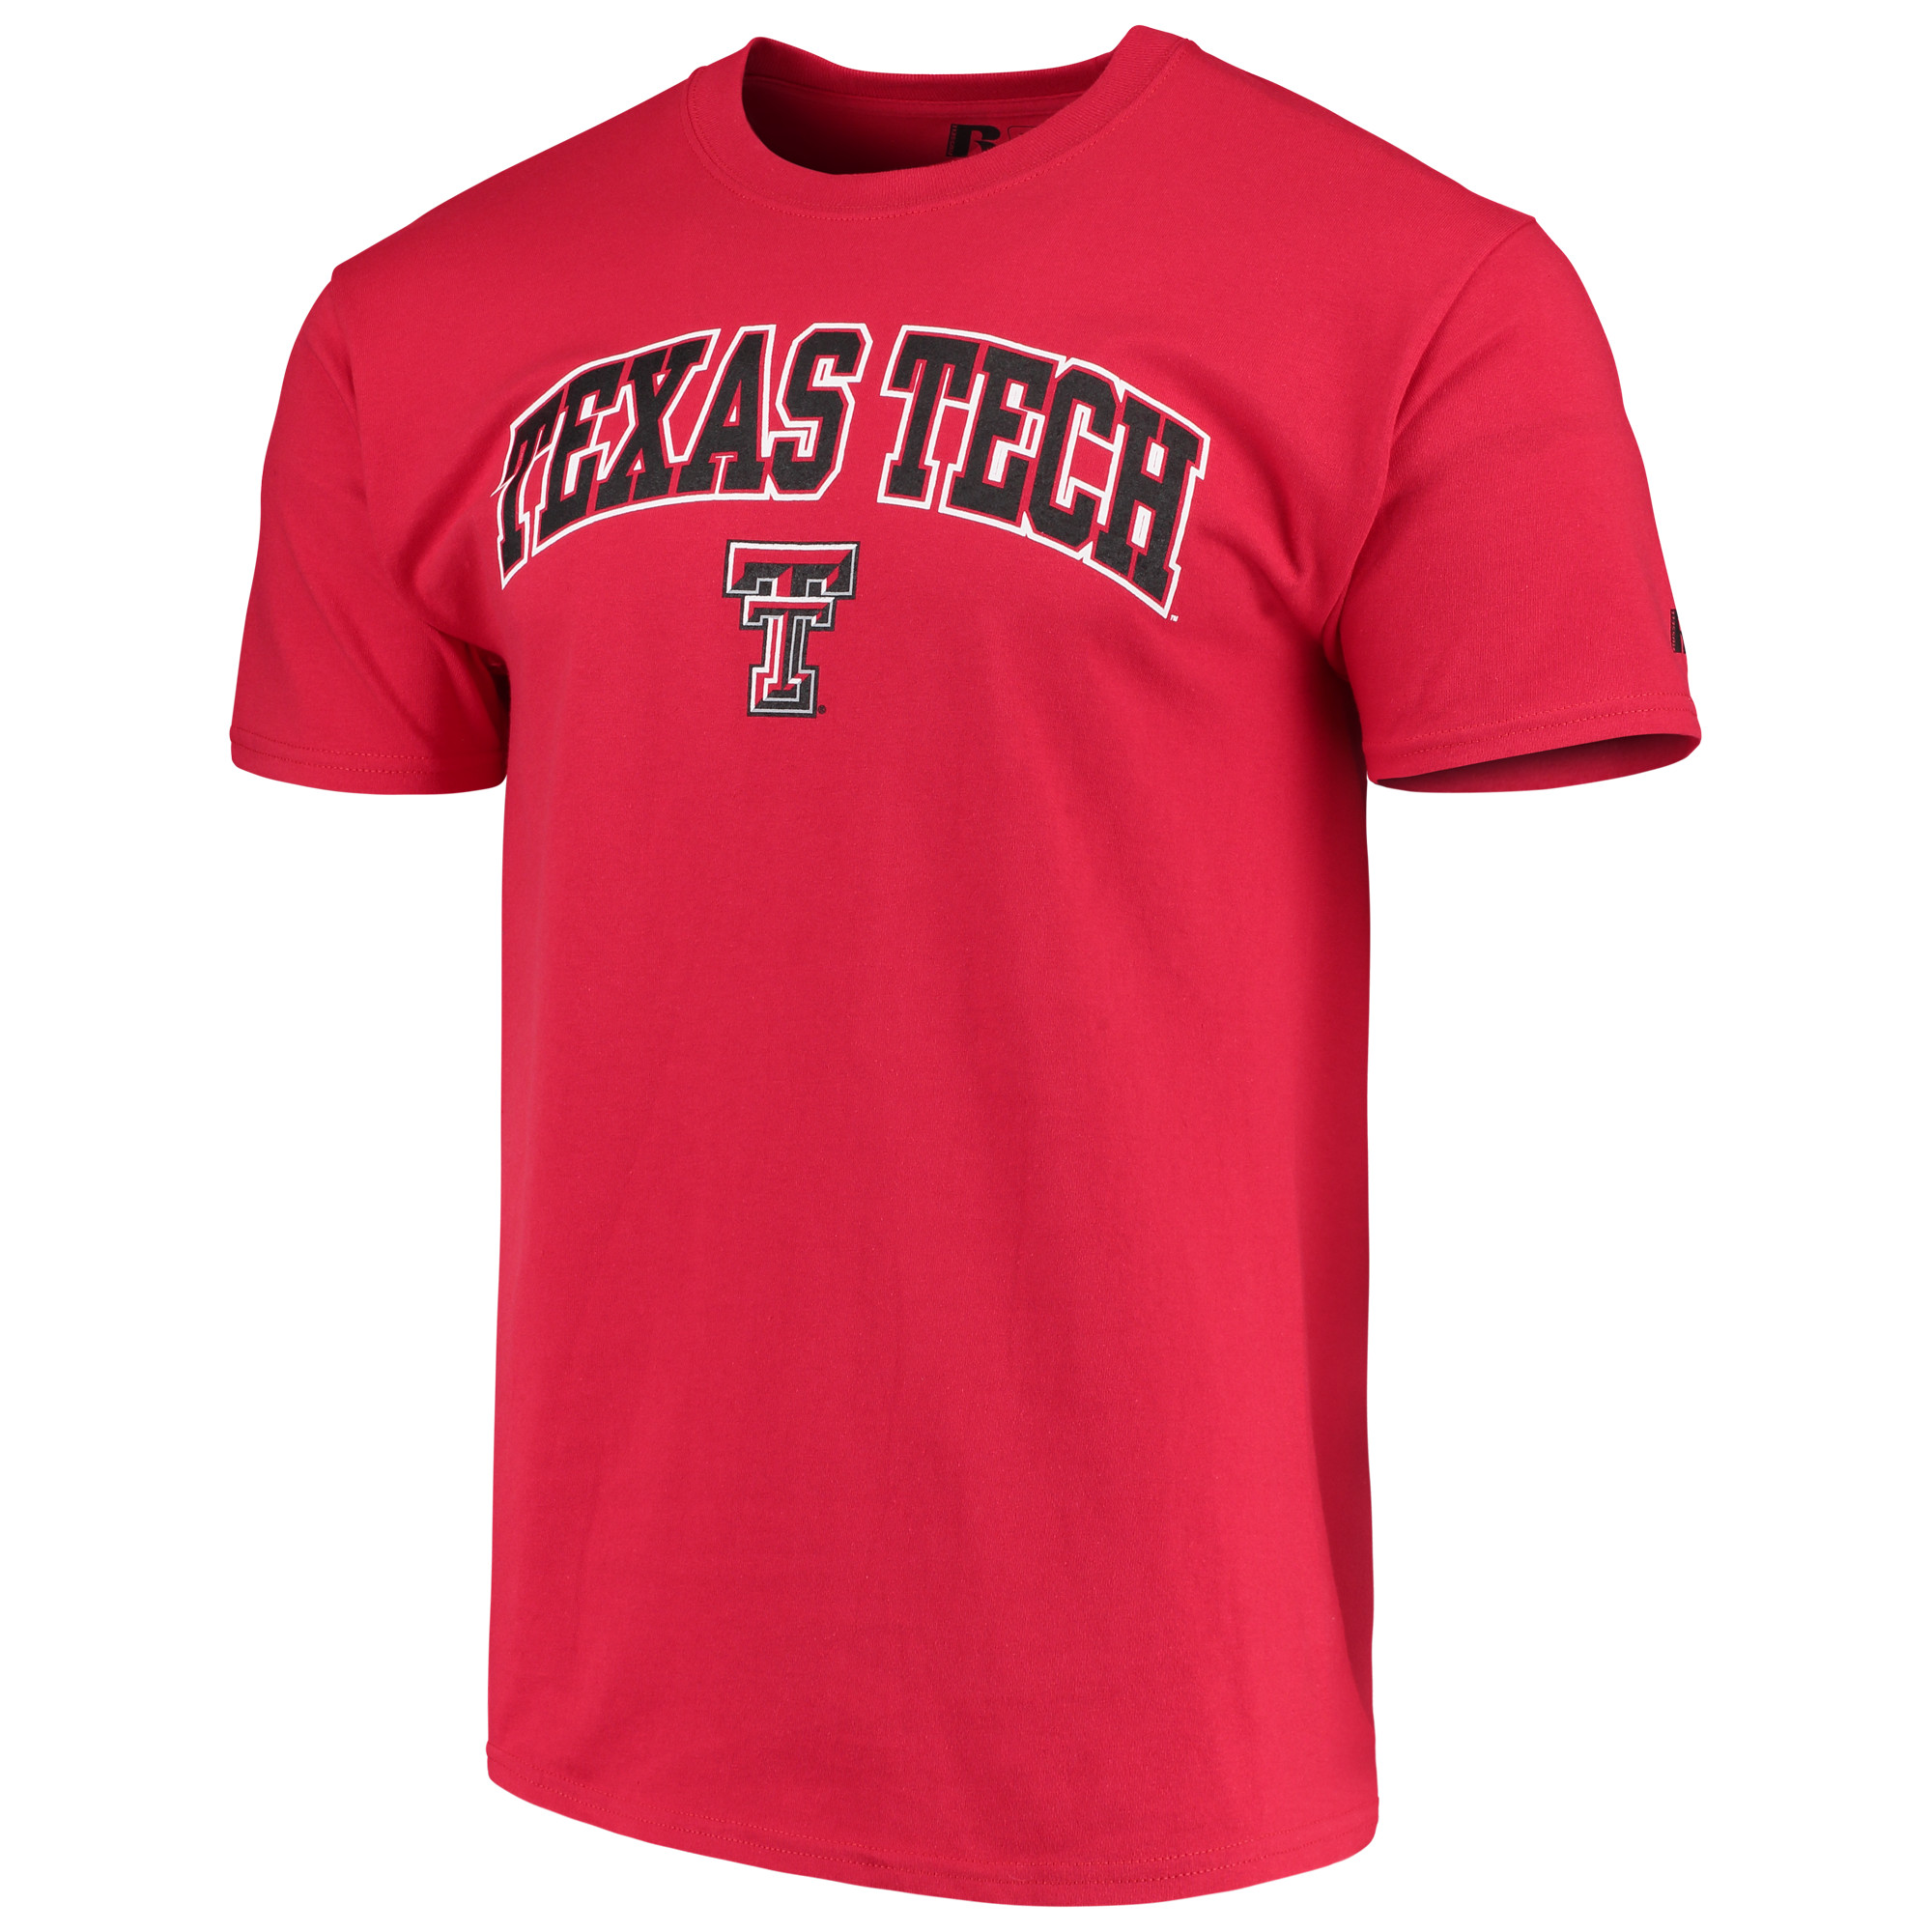 Men's Russell Red Texas Tech Red Raiders Crew Core Print T-Shirt